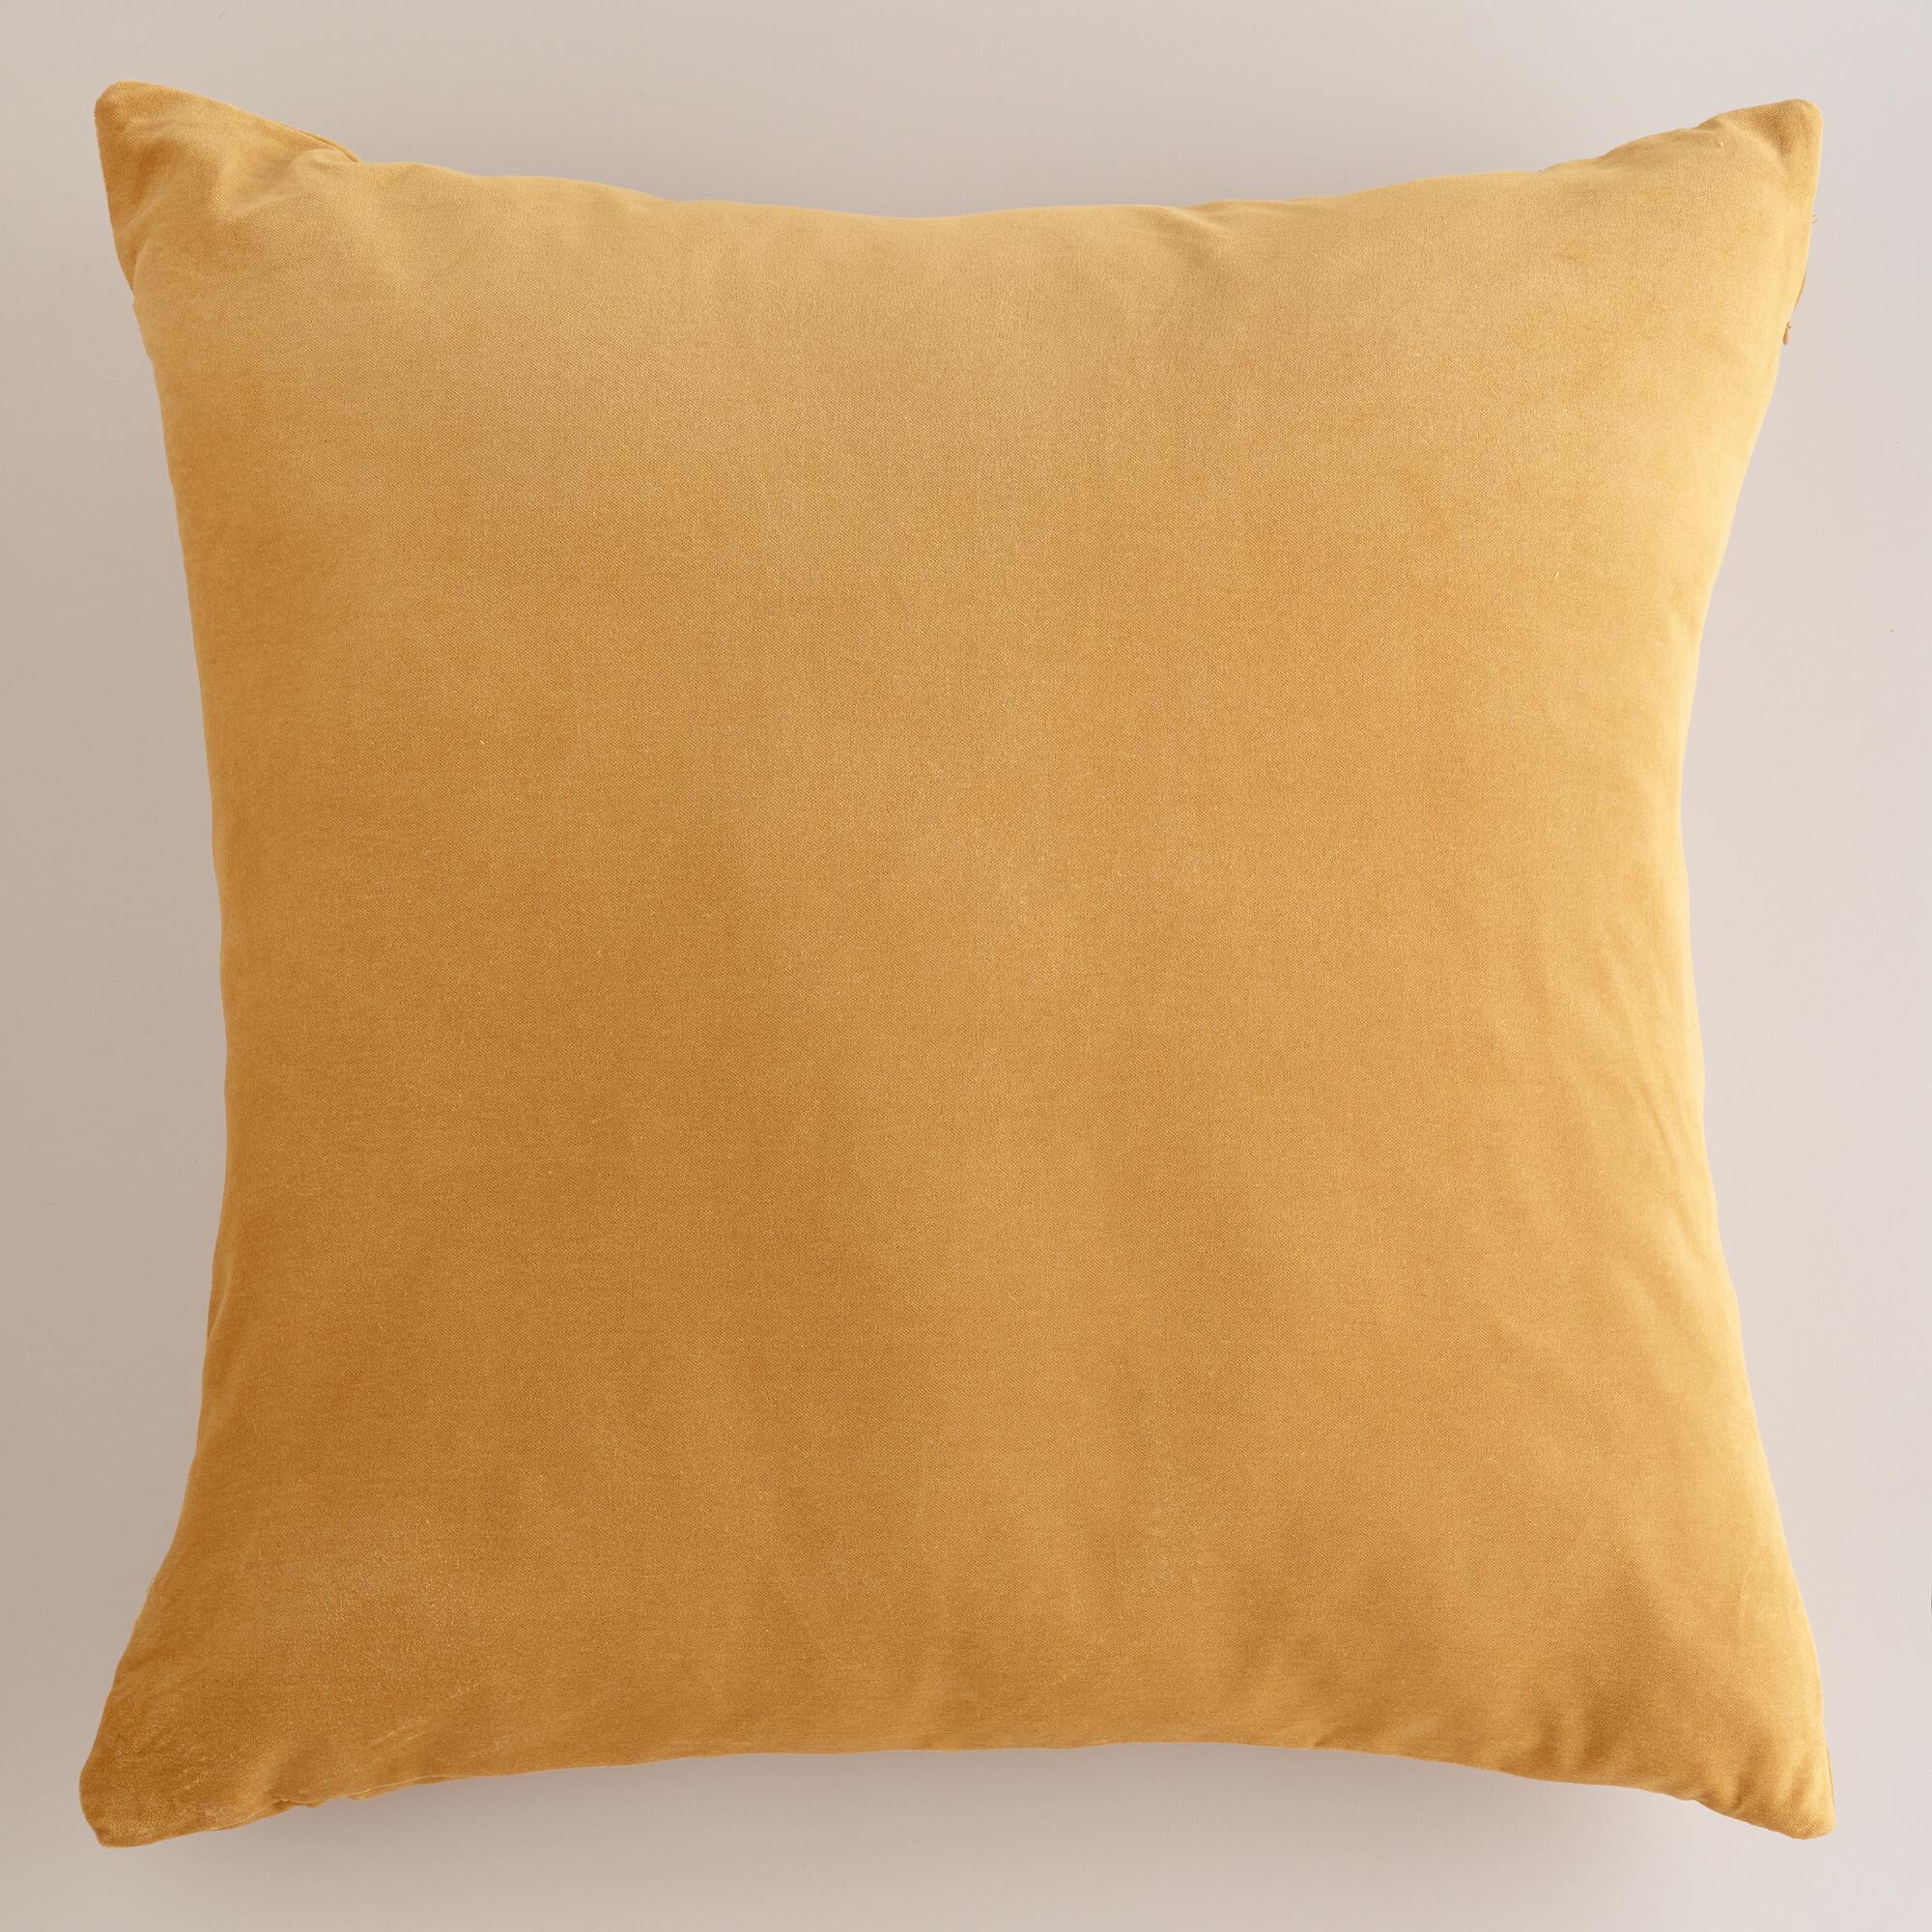 Throw Pillows Velvet : Amber Velvet Throw Pillows World Market